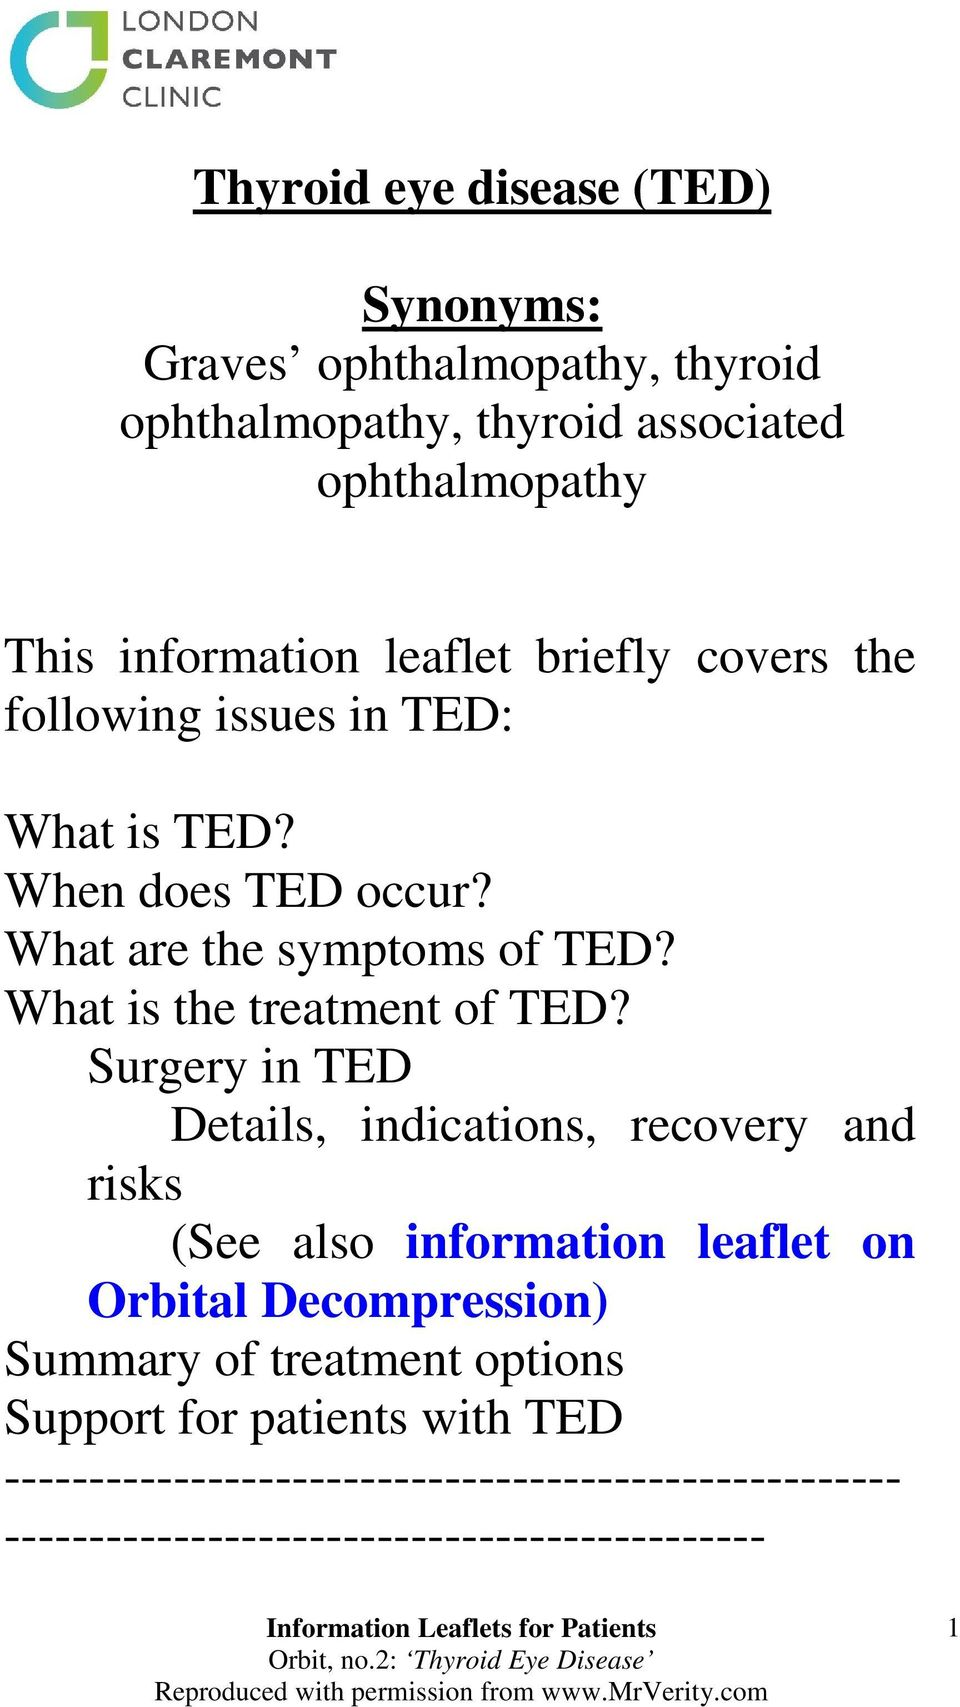 What is the treatment of TED?